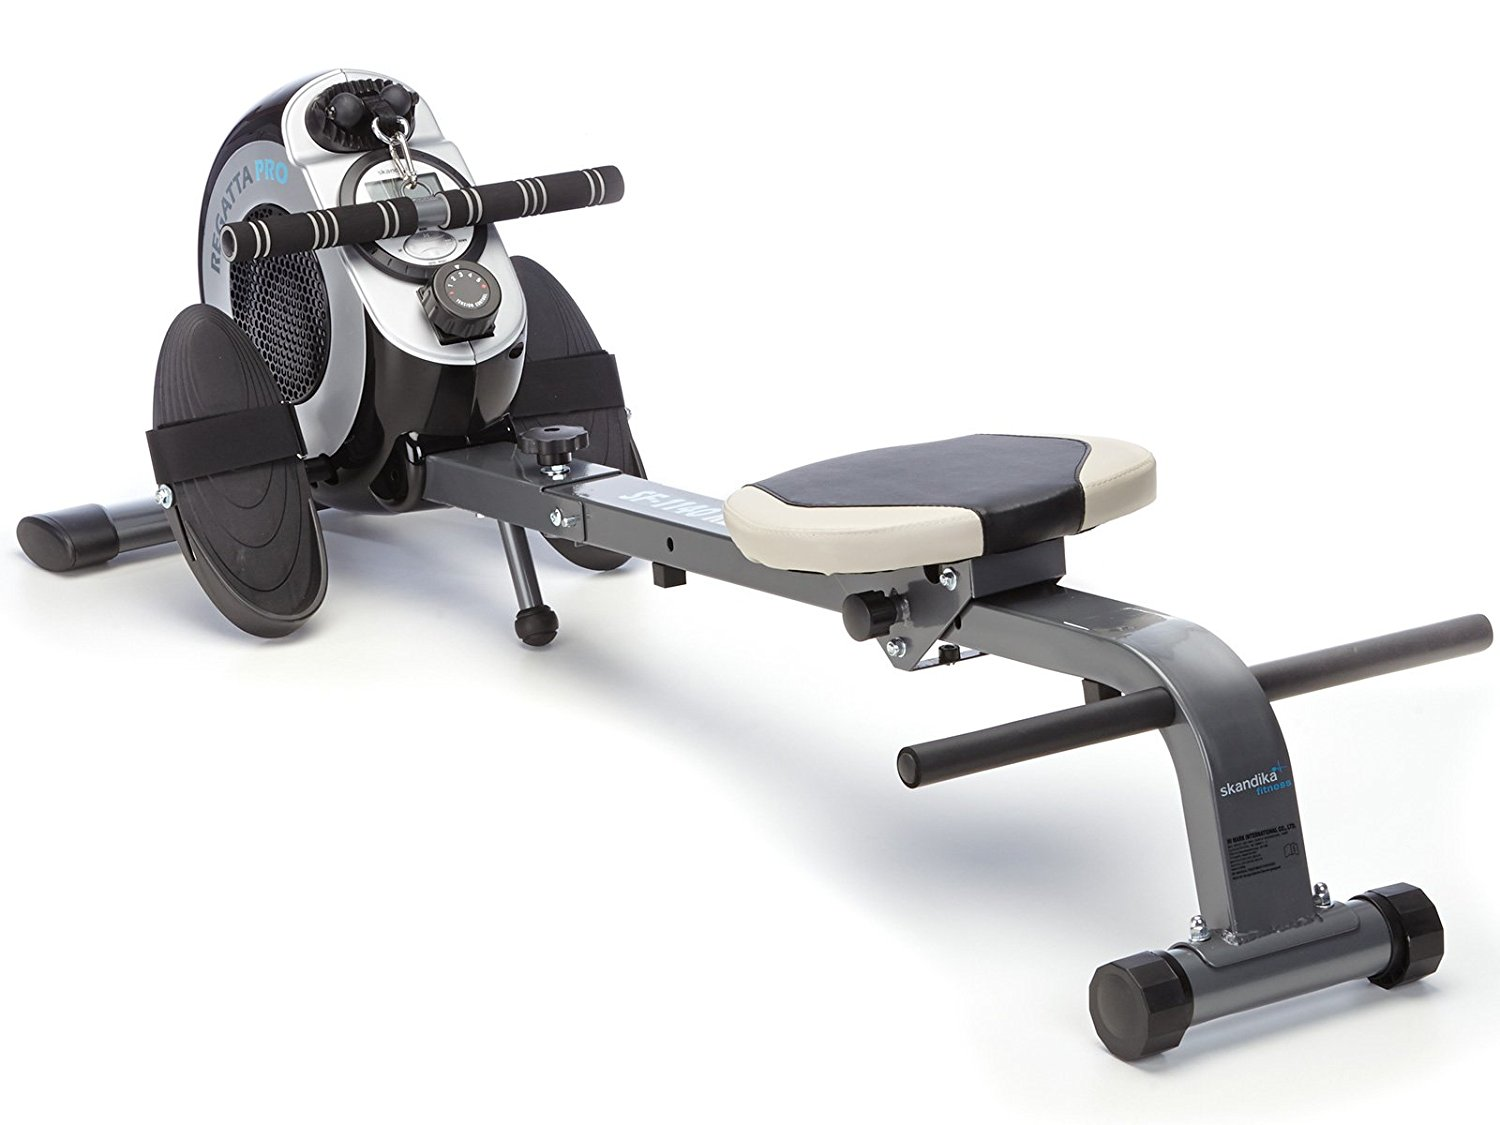 Skandika SF 1140 Regatta Pro 5 Neptune Rowing Machine